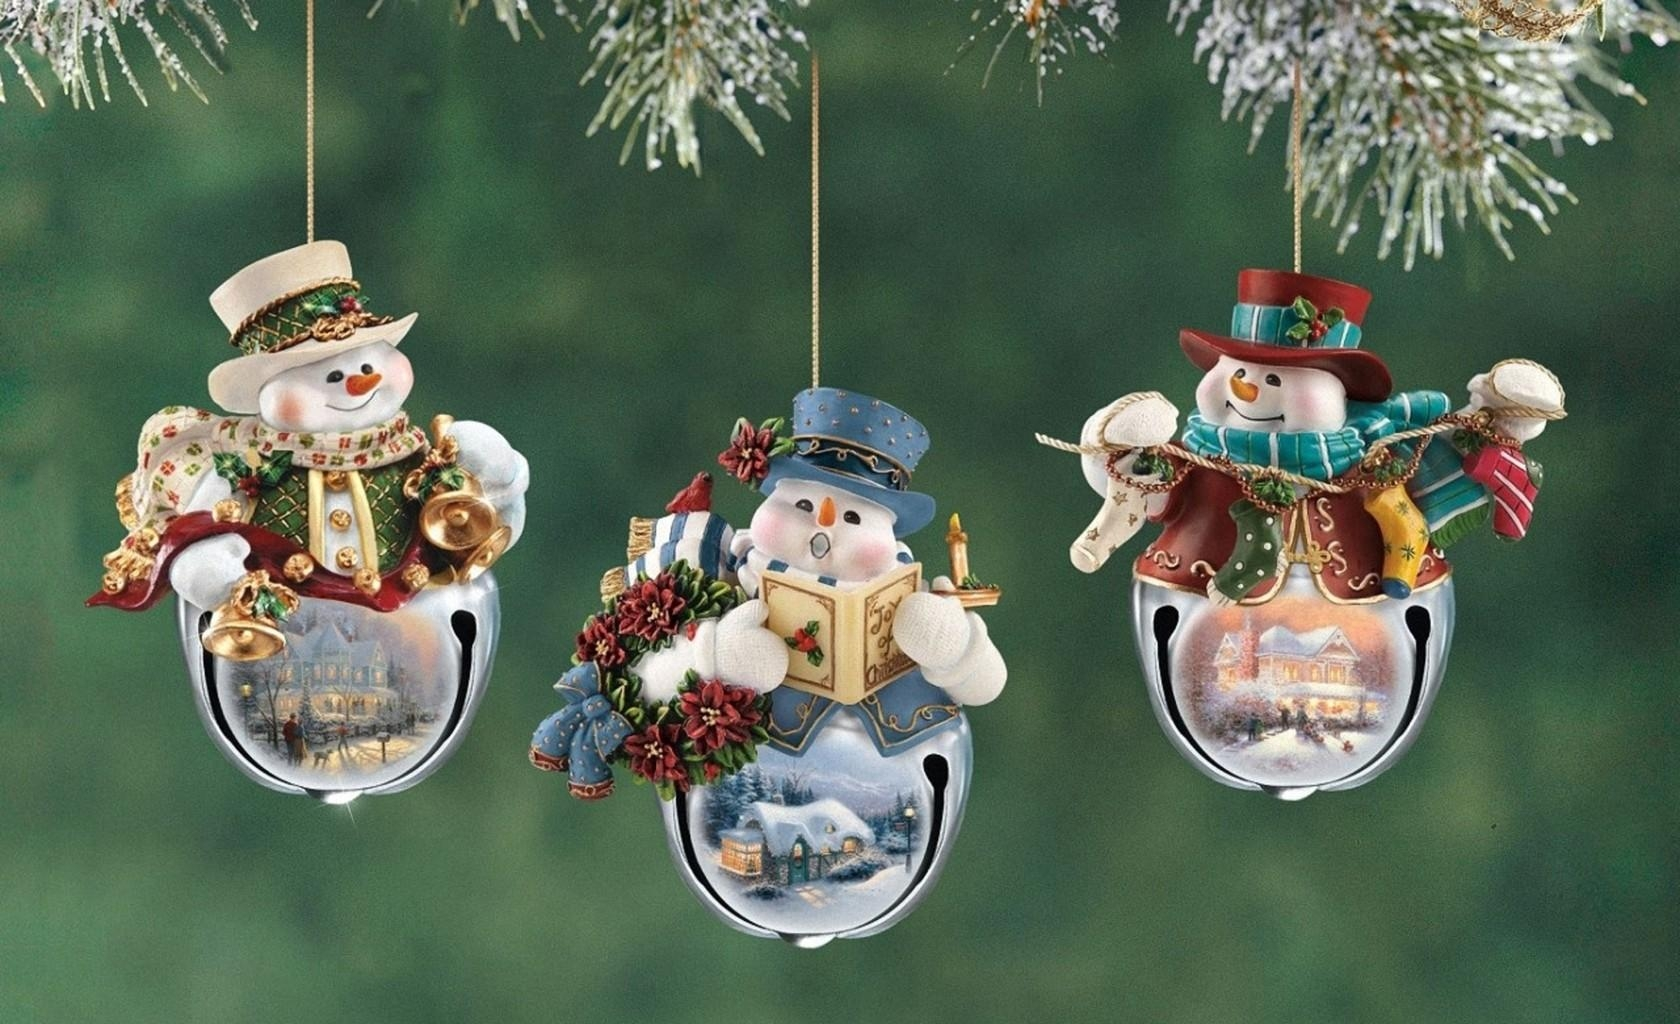 124803 download wallpaper Holidays, New Year, Snowman, Christmas, Holiday, Close-Up, Branch, Christmas Decorations, Christmas Tree Toys screensavers and pictures for free